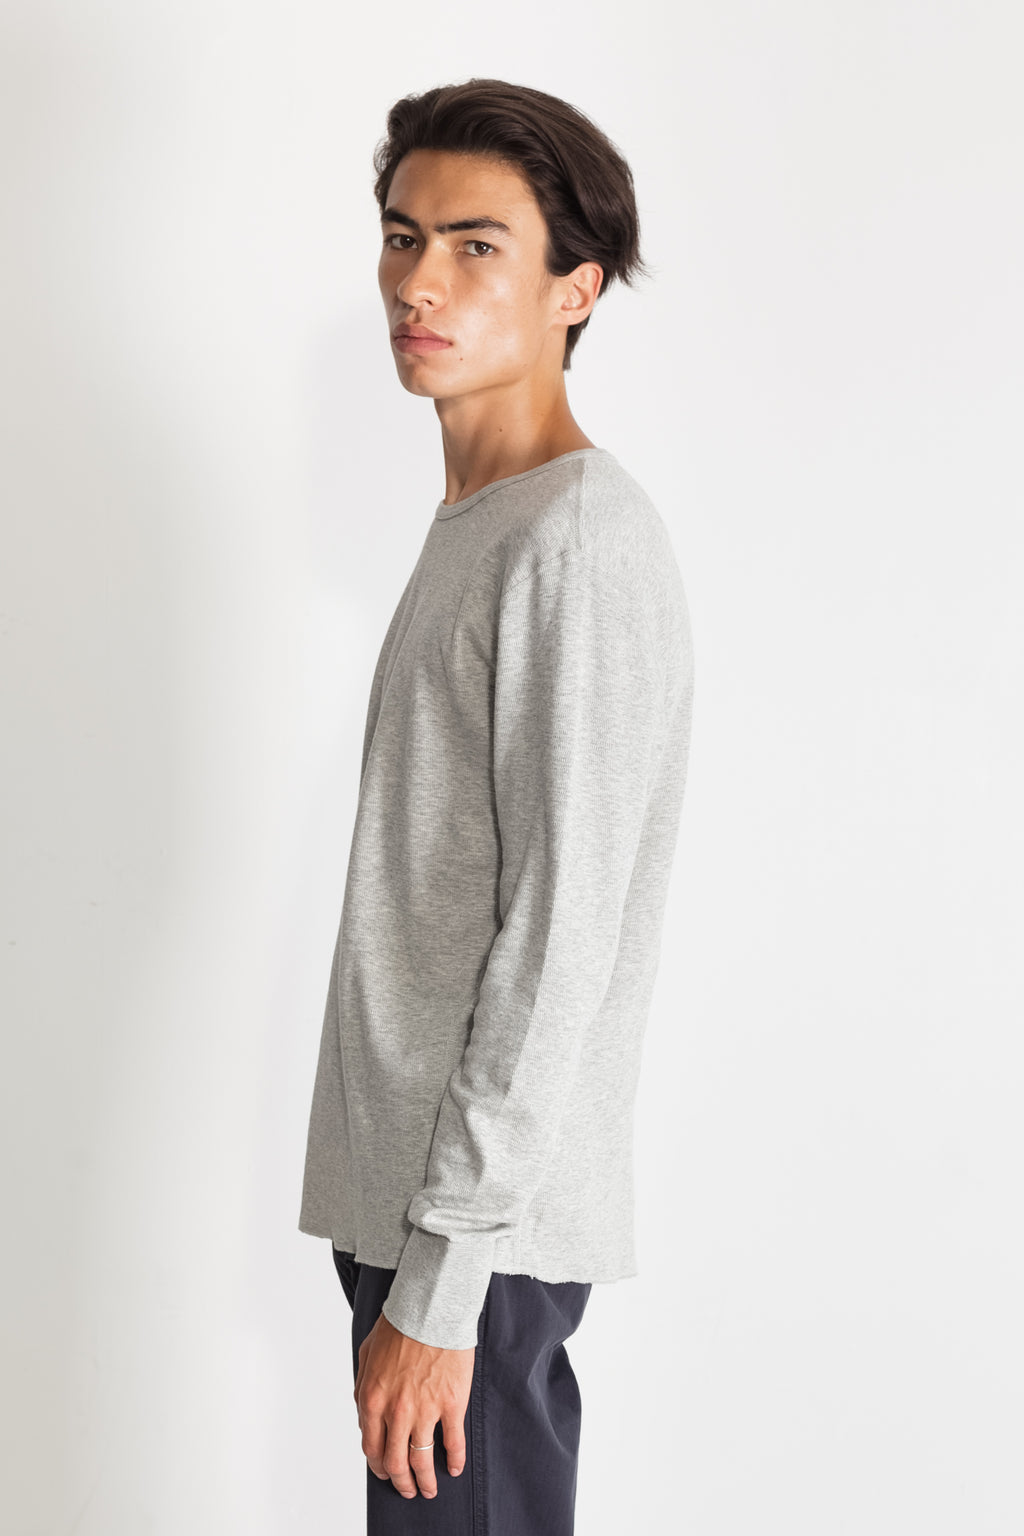 mesh thermal crew in melange grey 01